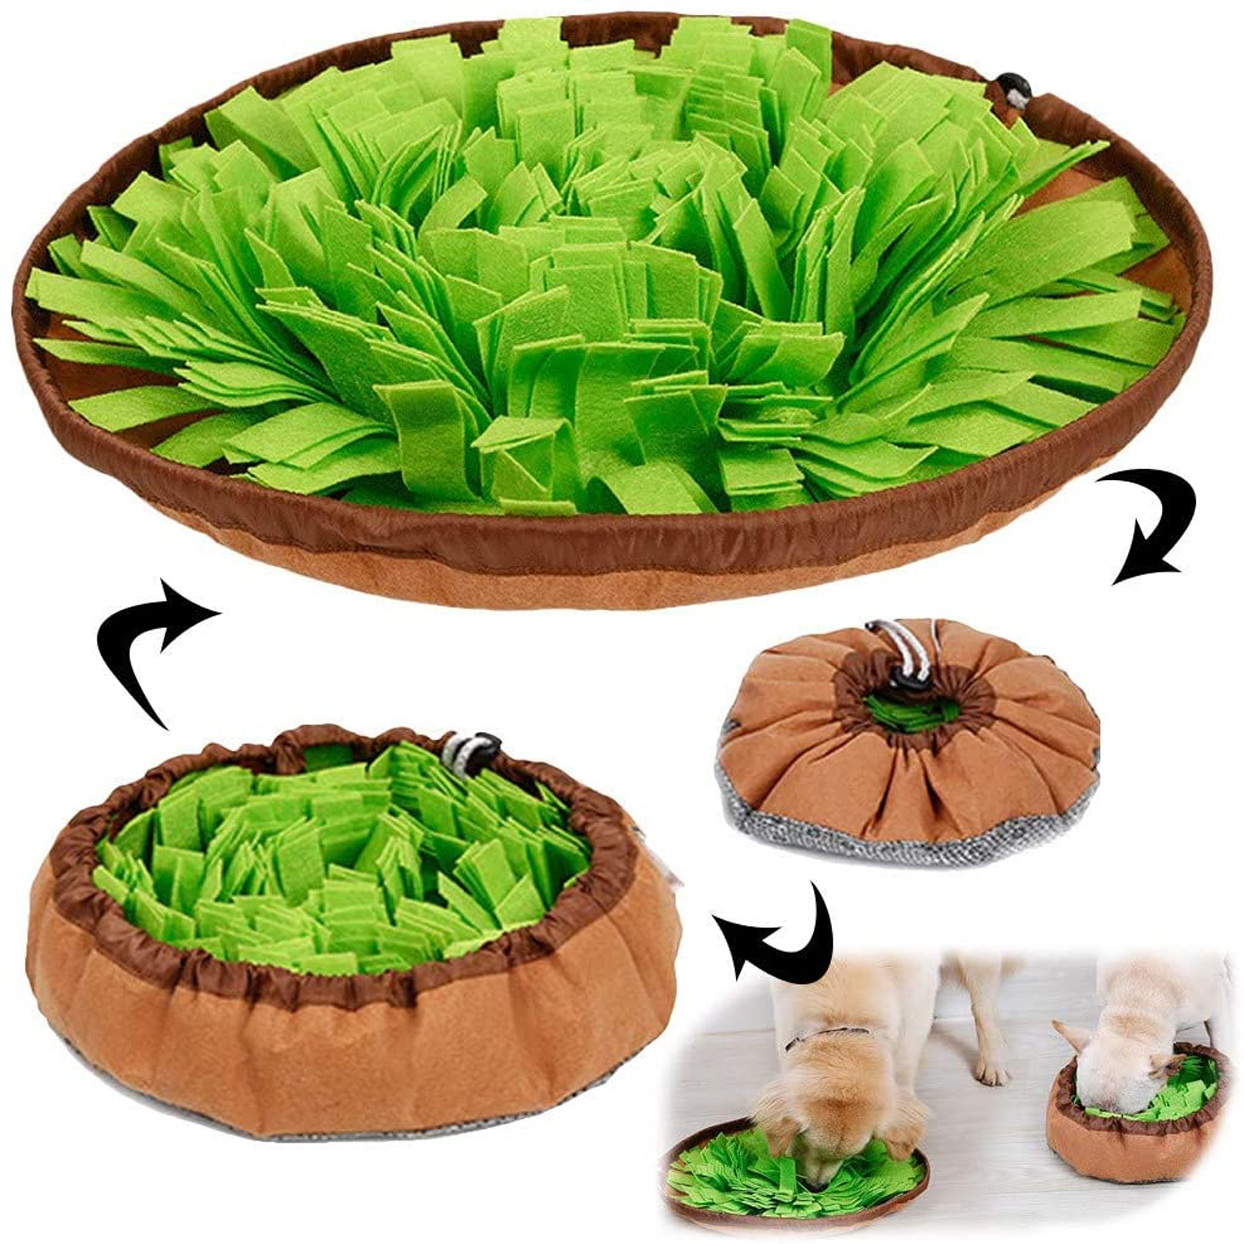 awoof-pet-snuffle-mat-for-dogs